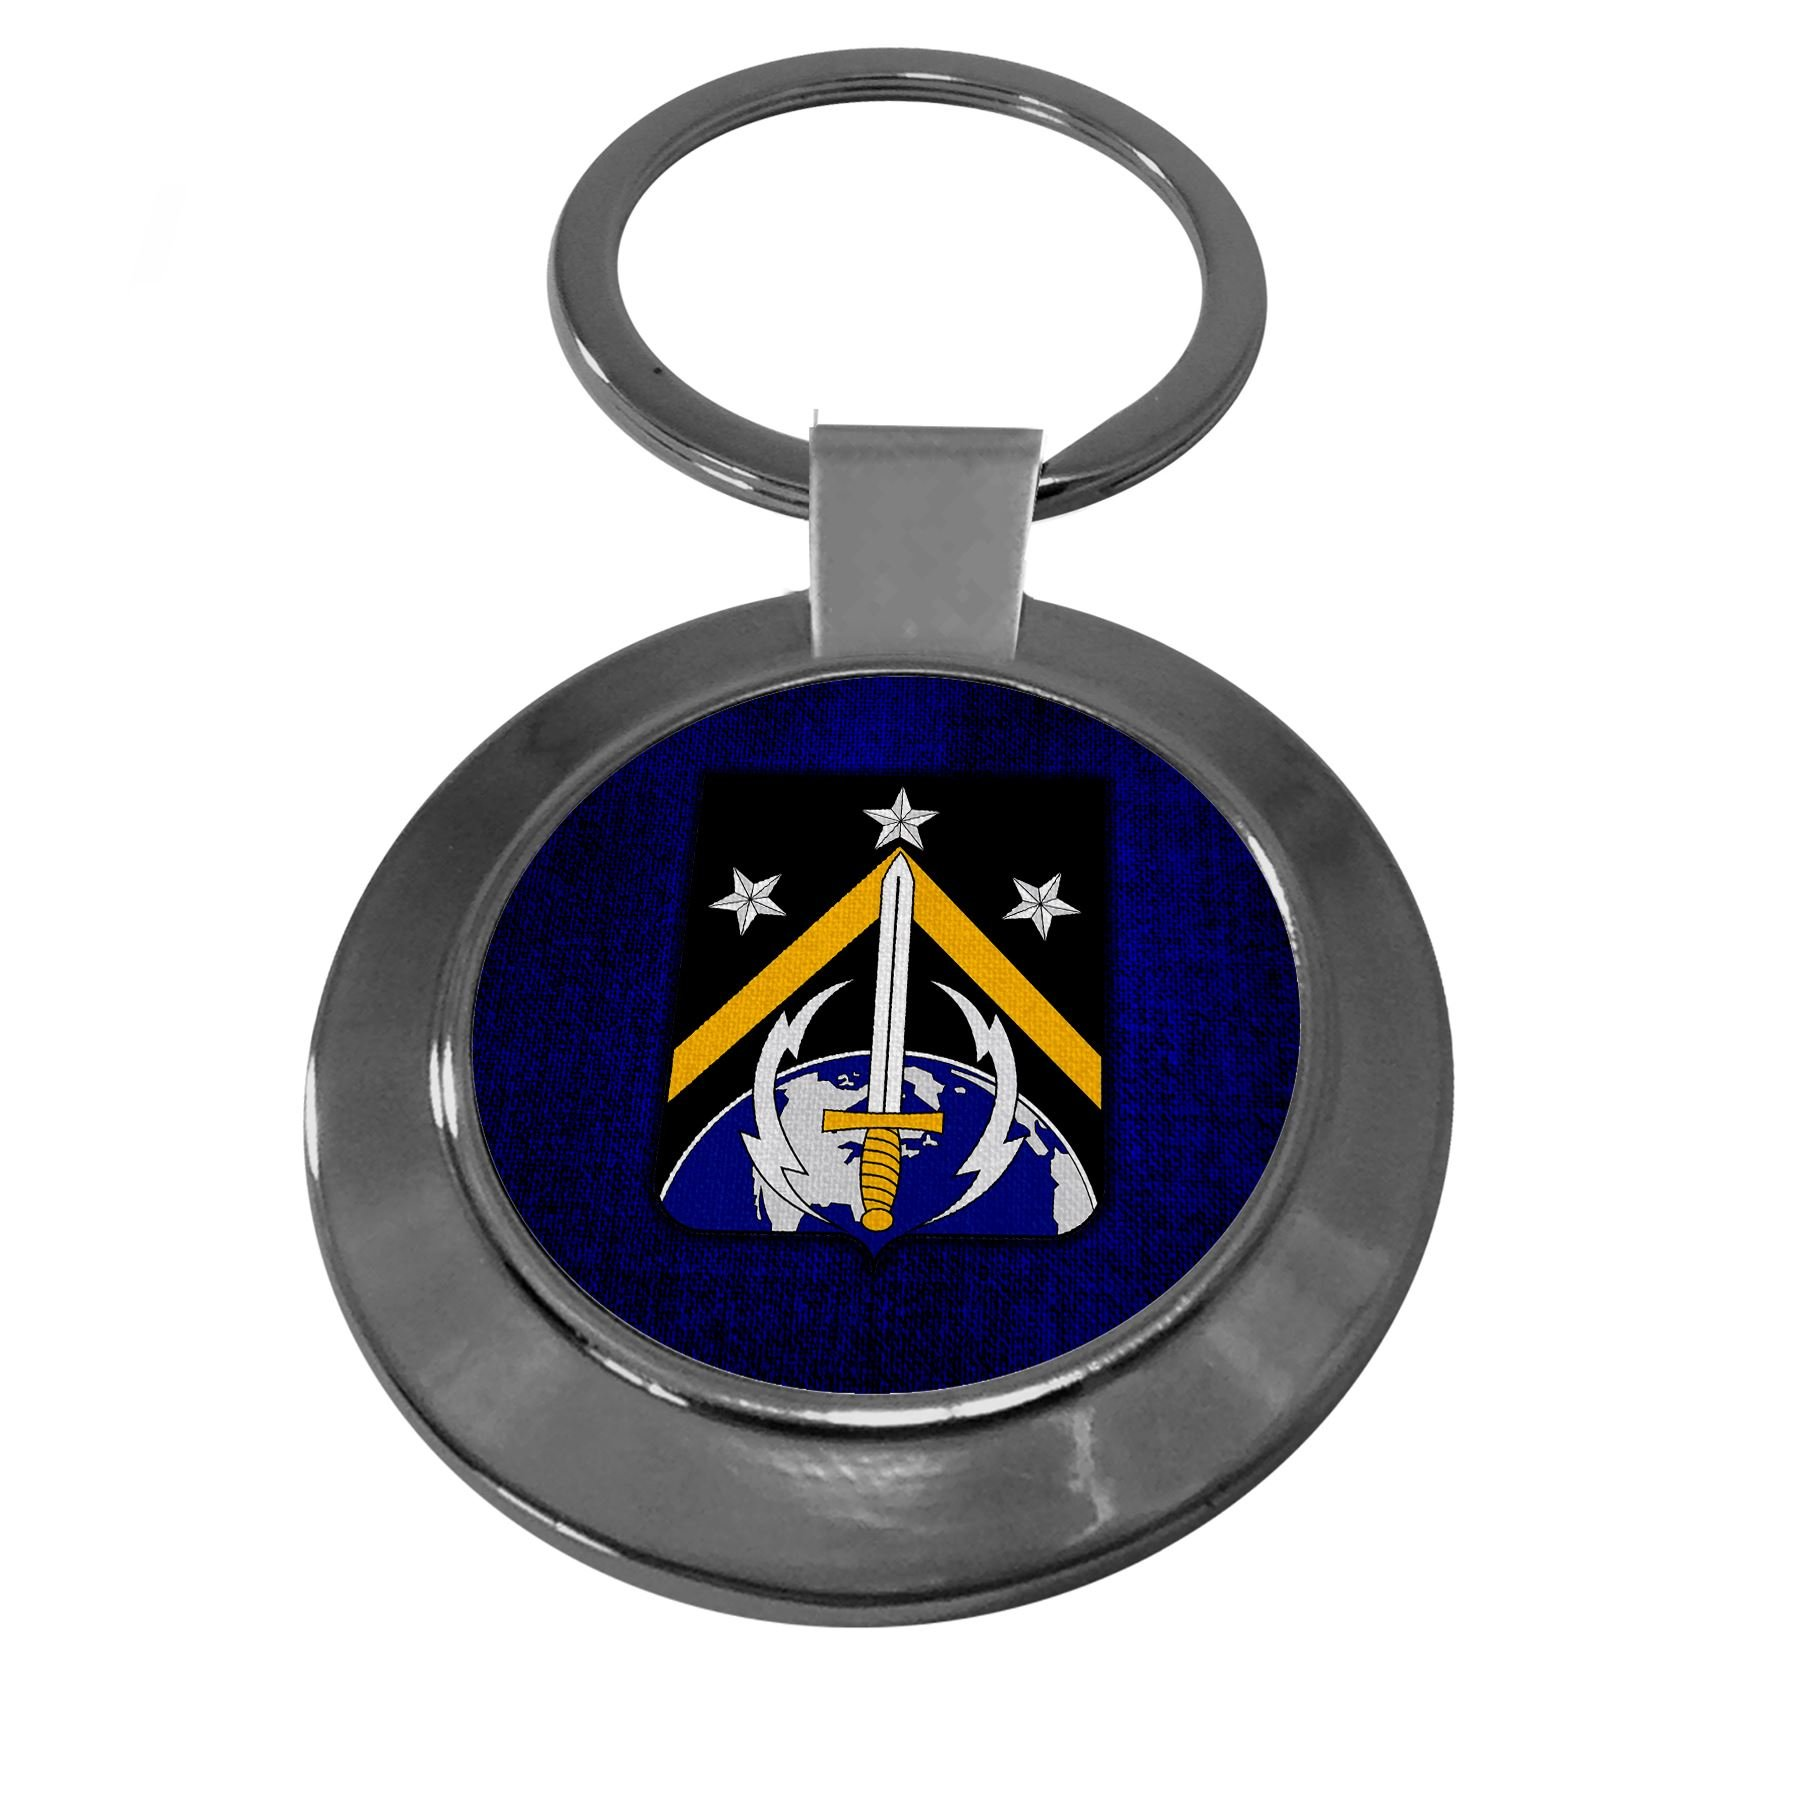 Premium Key Ring with U.S. Army 1st Space Battalion, coat of arms